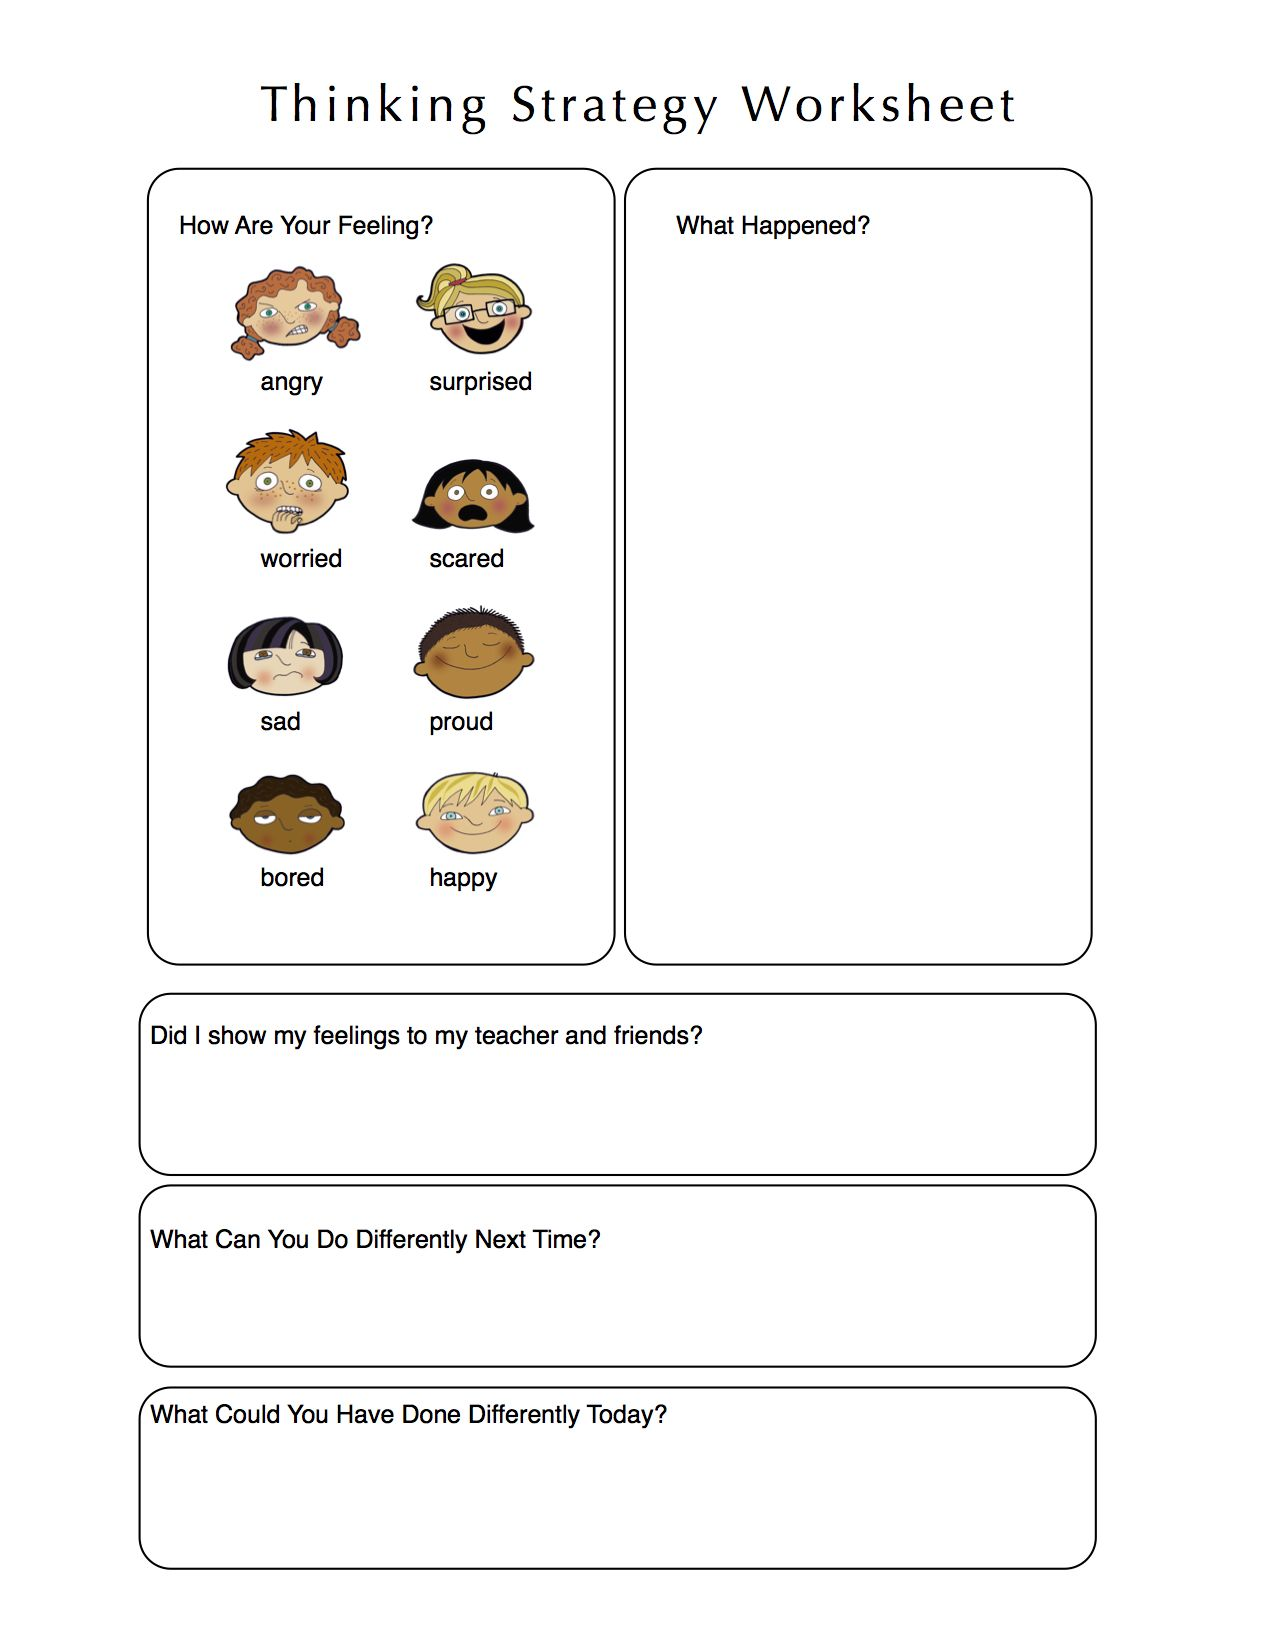 Worksheet For Kids To Think Through A Problem Using El And